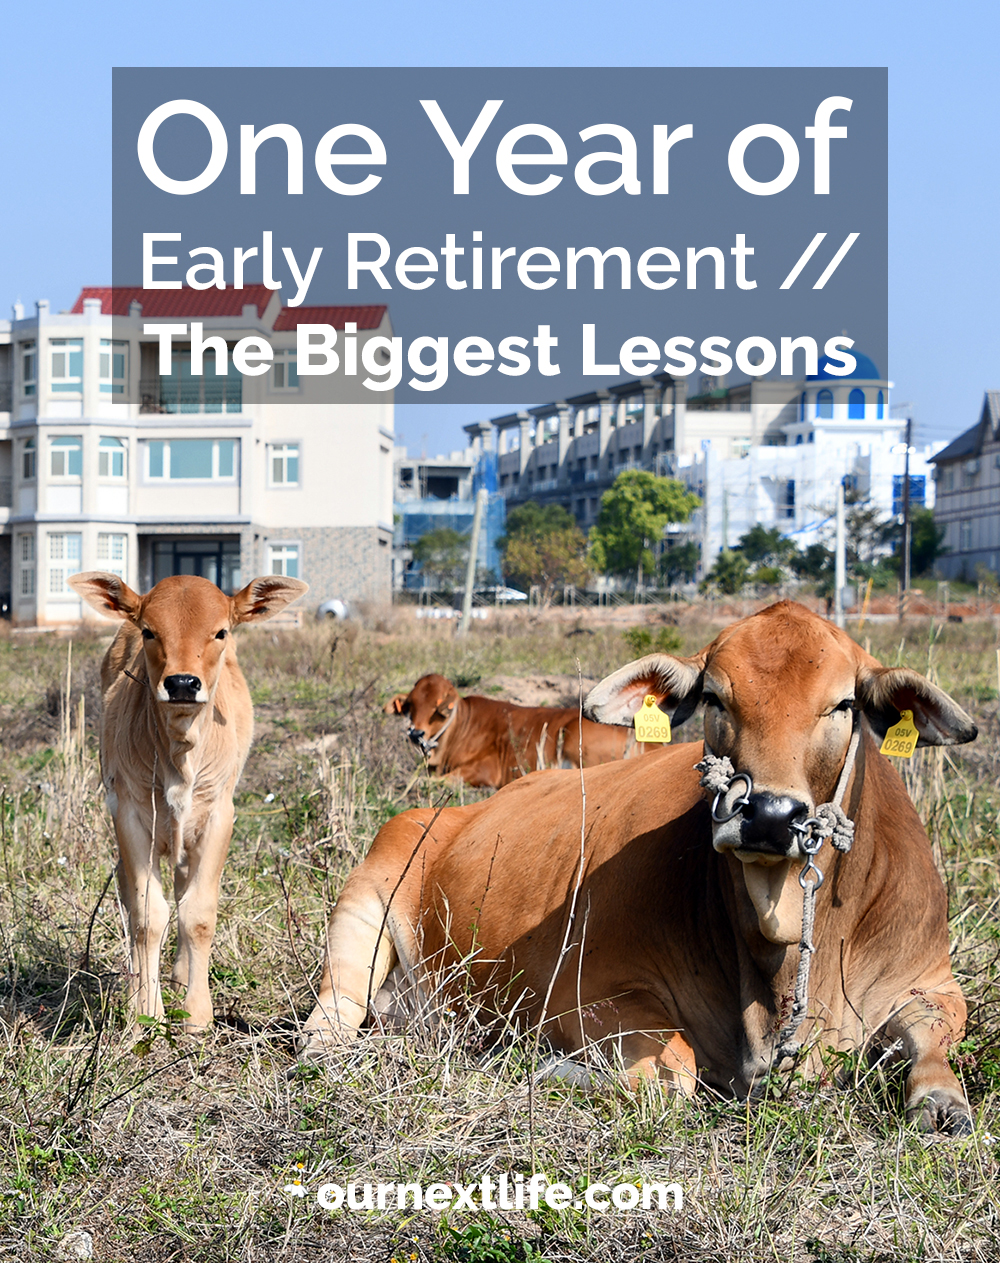 One Year of Early Retirement, Part 1: Biggest Lessons // Our Next Life // early retirement, financial independence, work optional living, purpose, adventure